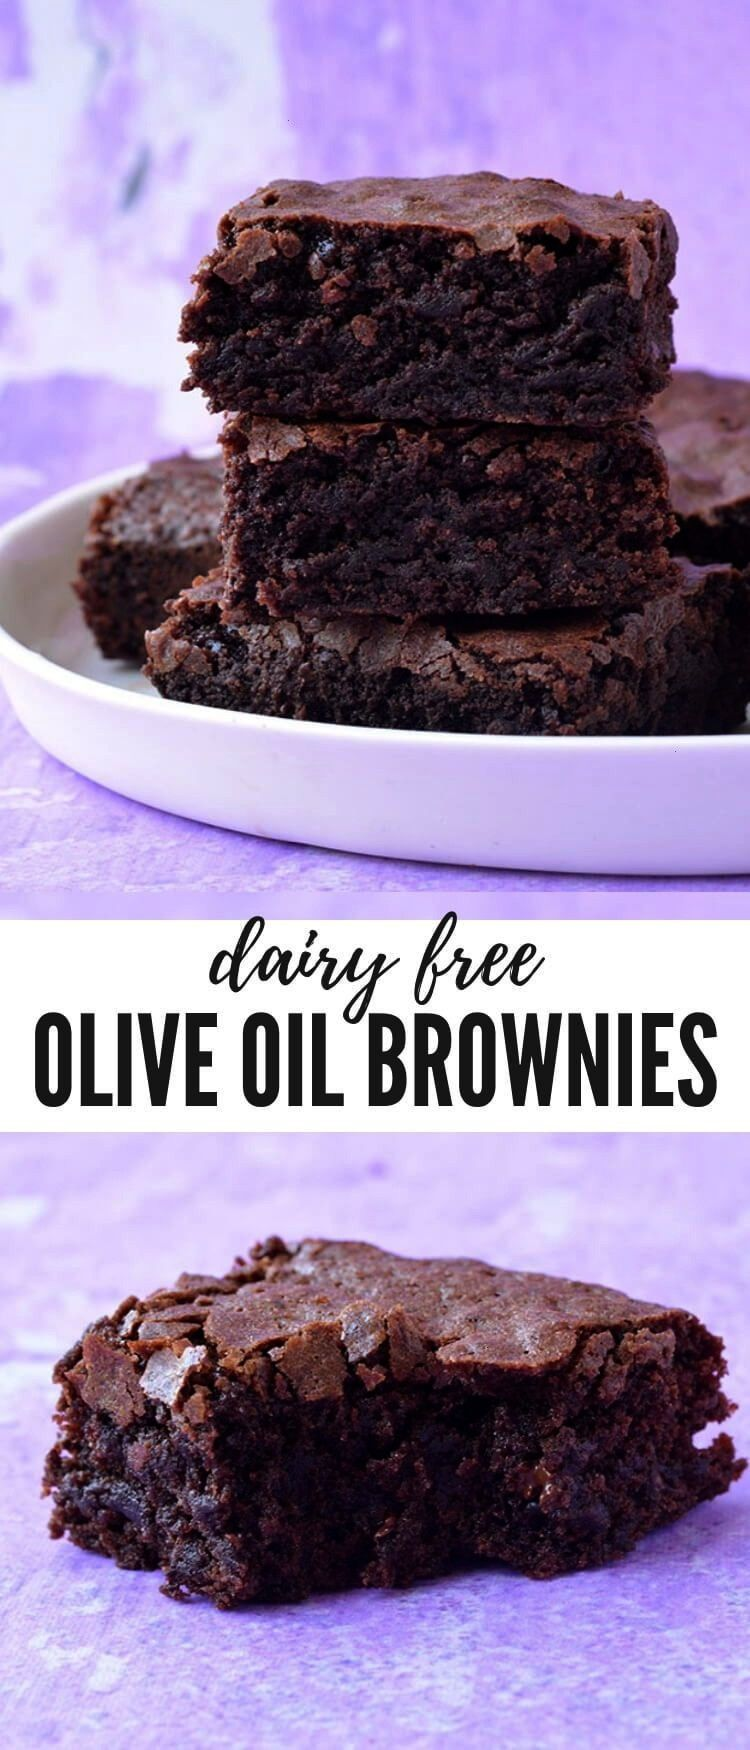 fall head over heels for these deliciously easy Olive Oil Brownies. Filled to the brim with chocola